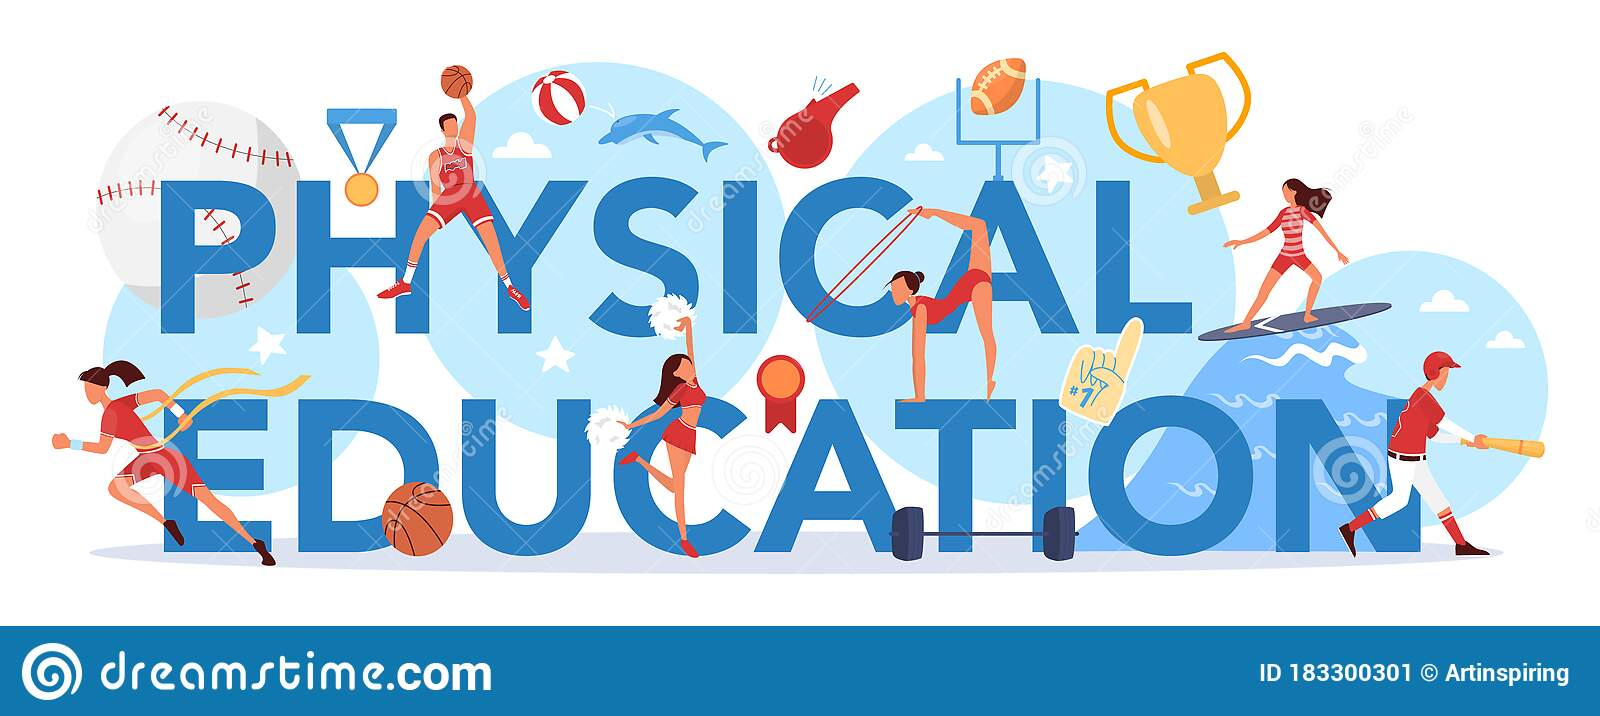 physical-education-lesson-school-class-typographic-header-concept-students-doing-excercise-gym-sport-equipment-183300301.jpg (1600×716)